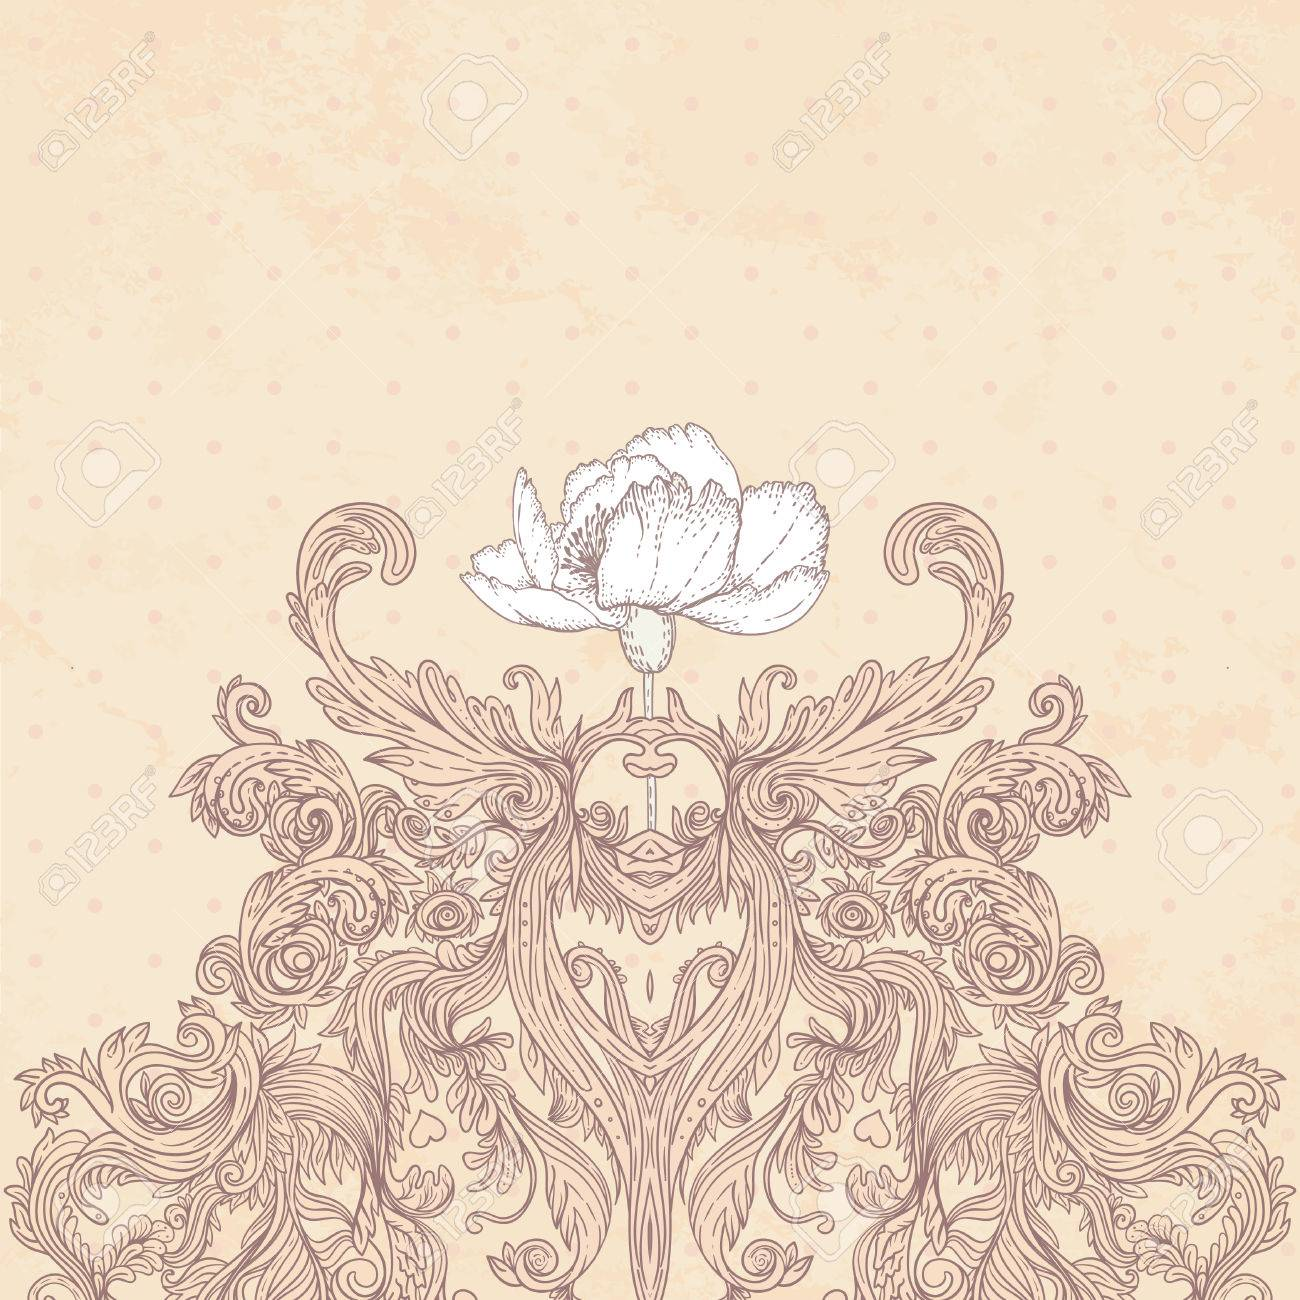 Vintage background ornate baroque pattern vector illustration stock - Vintage Background Ornate Baroque Pattern Vector Illustration Stock Vector 33592476